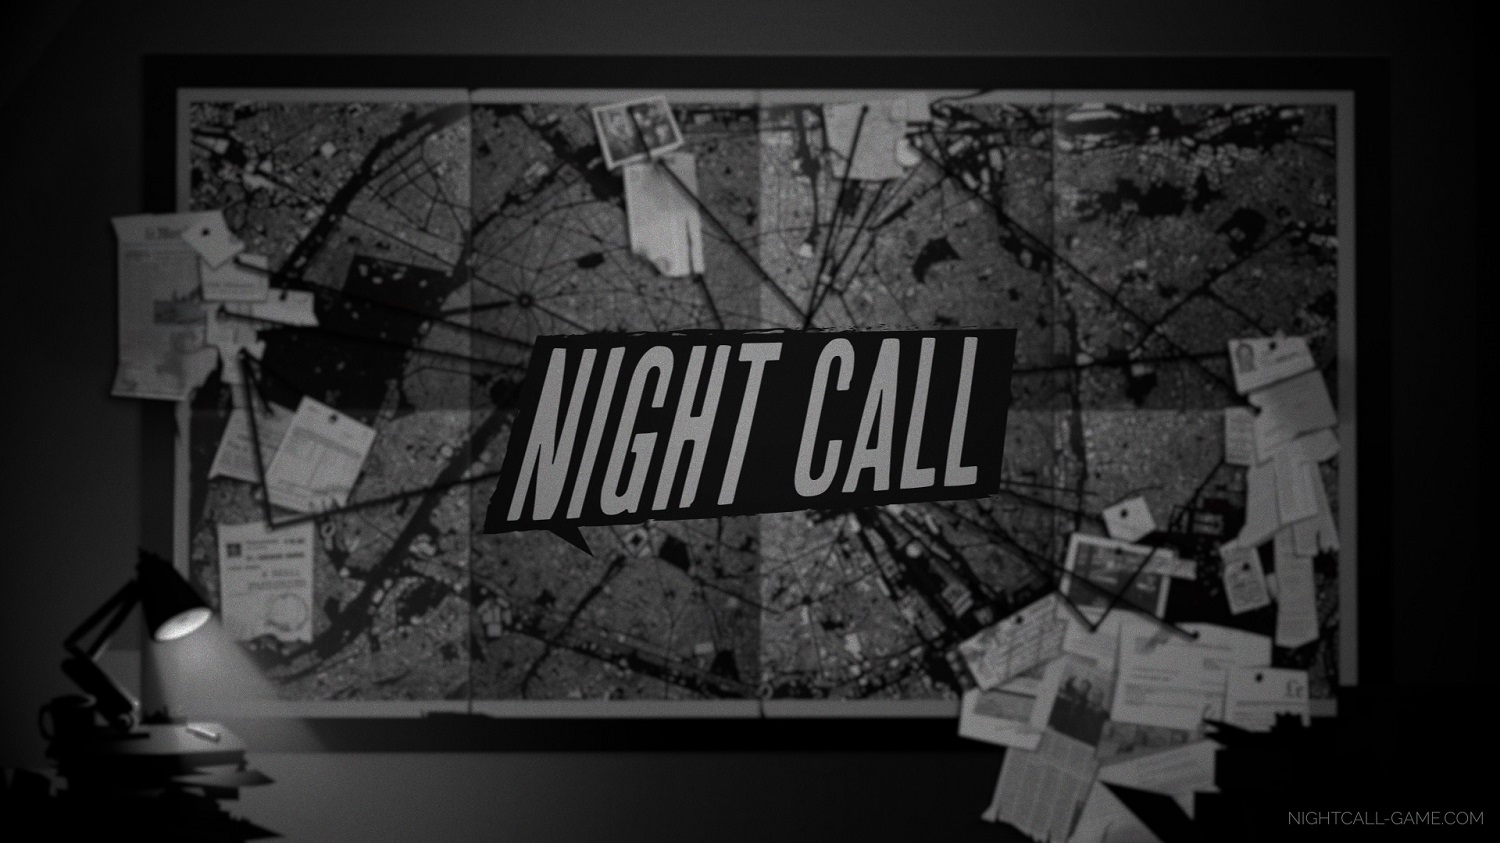 Preview: Night Call is a detective noir game that you should